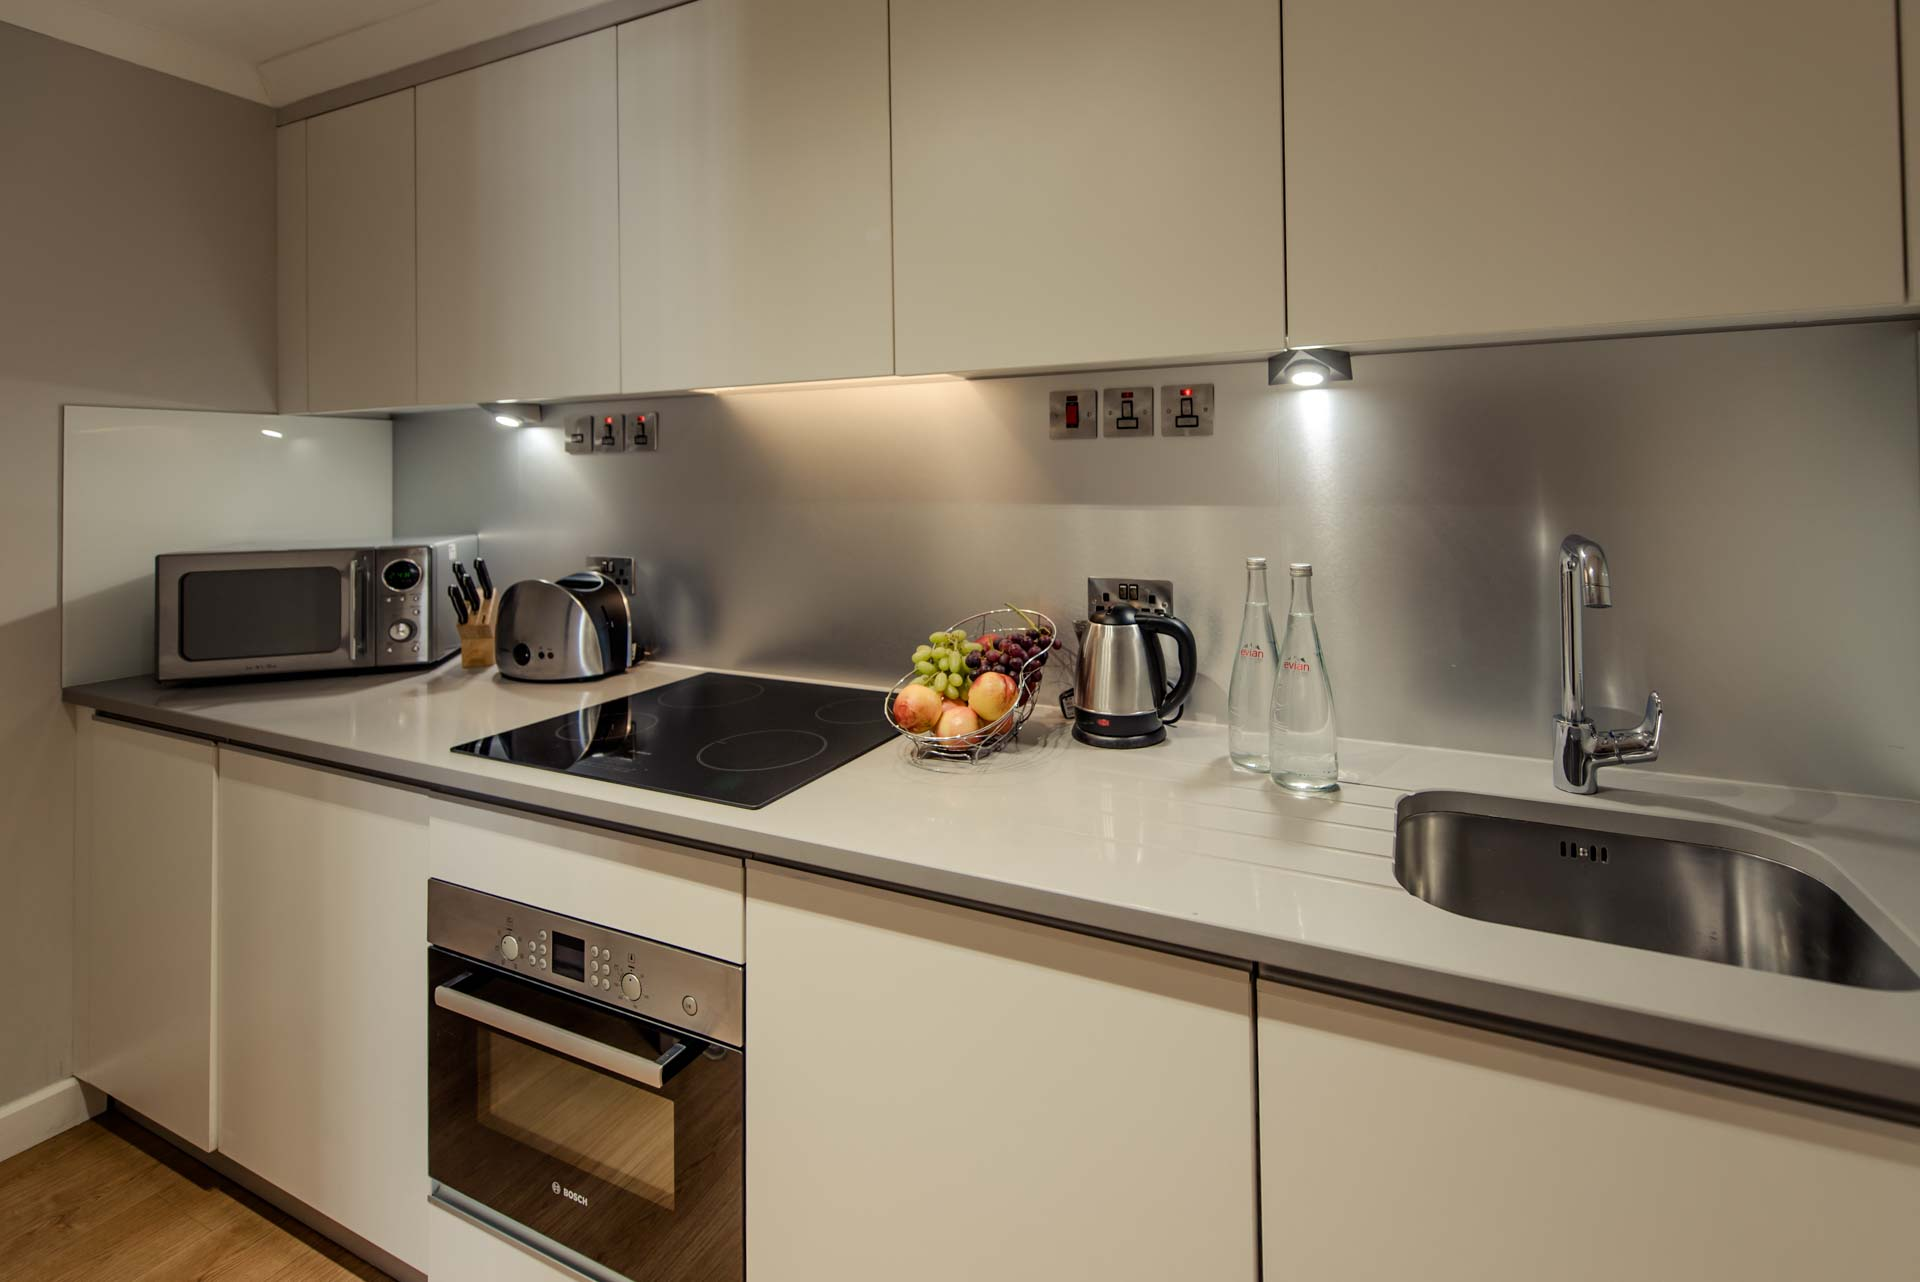 PREMIER SUITES PLUS Reading kitchen